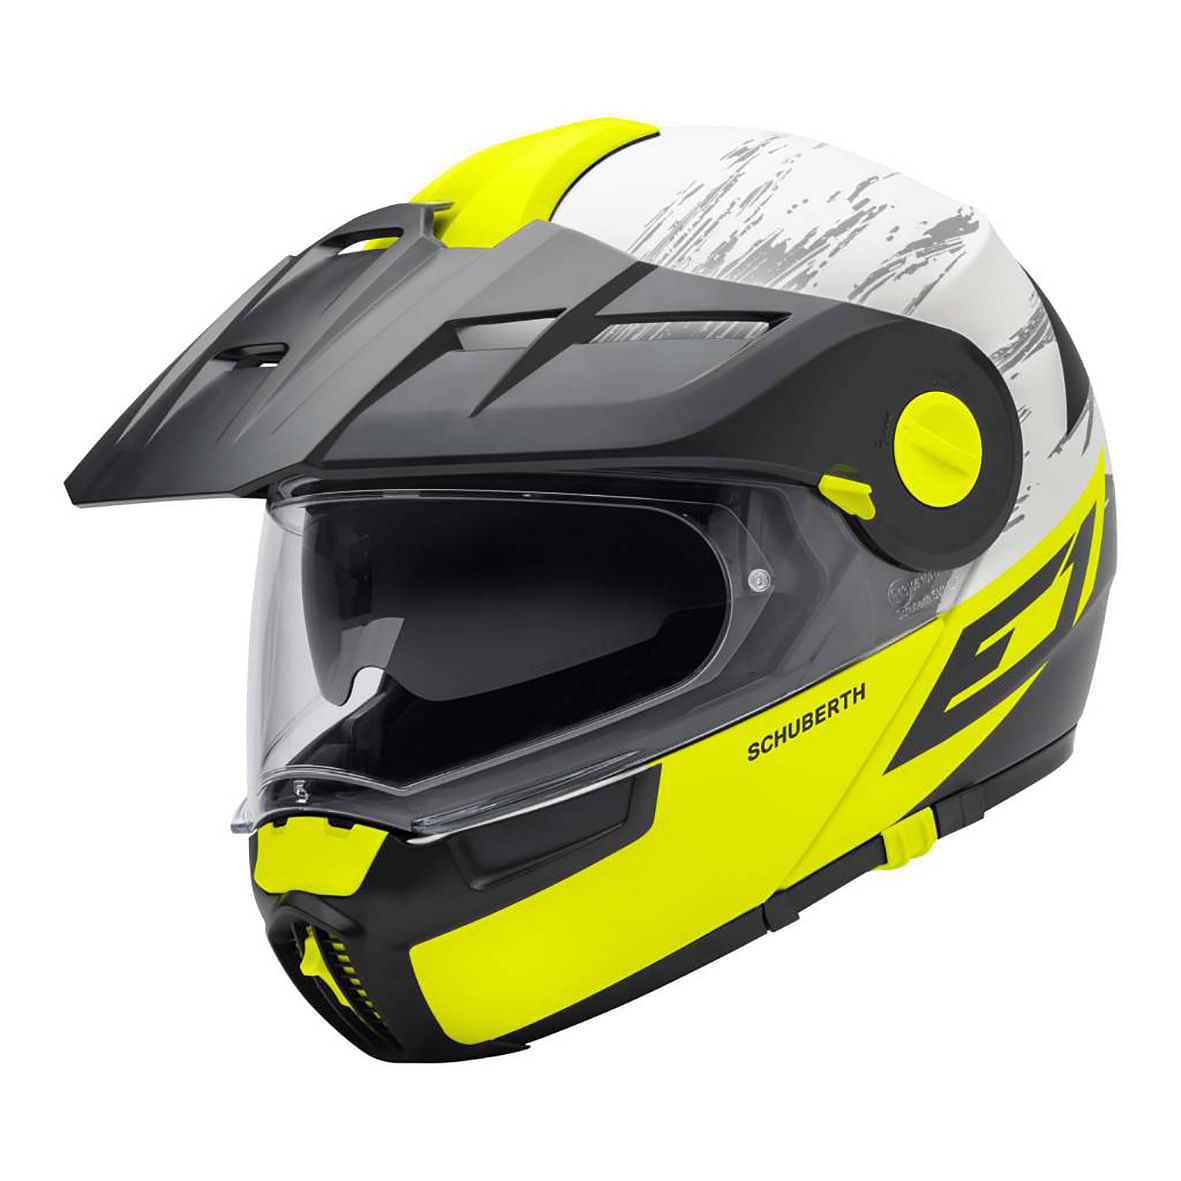 Motorcycle Gear: Schuberth E1 Crossfire helmet